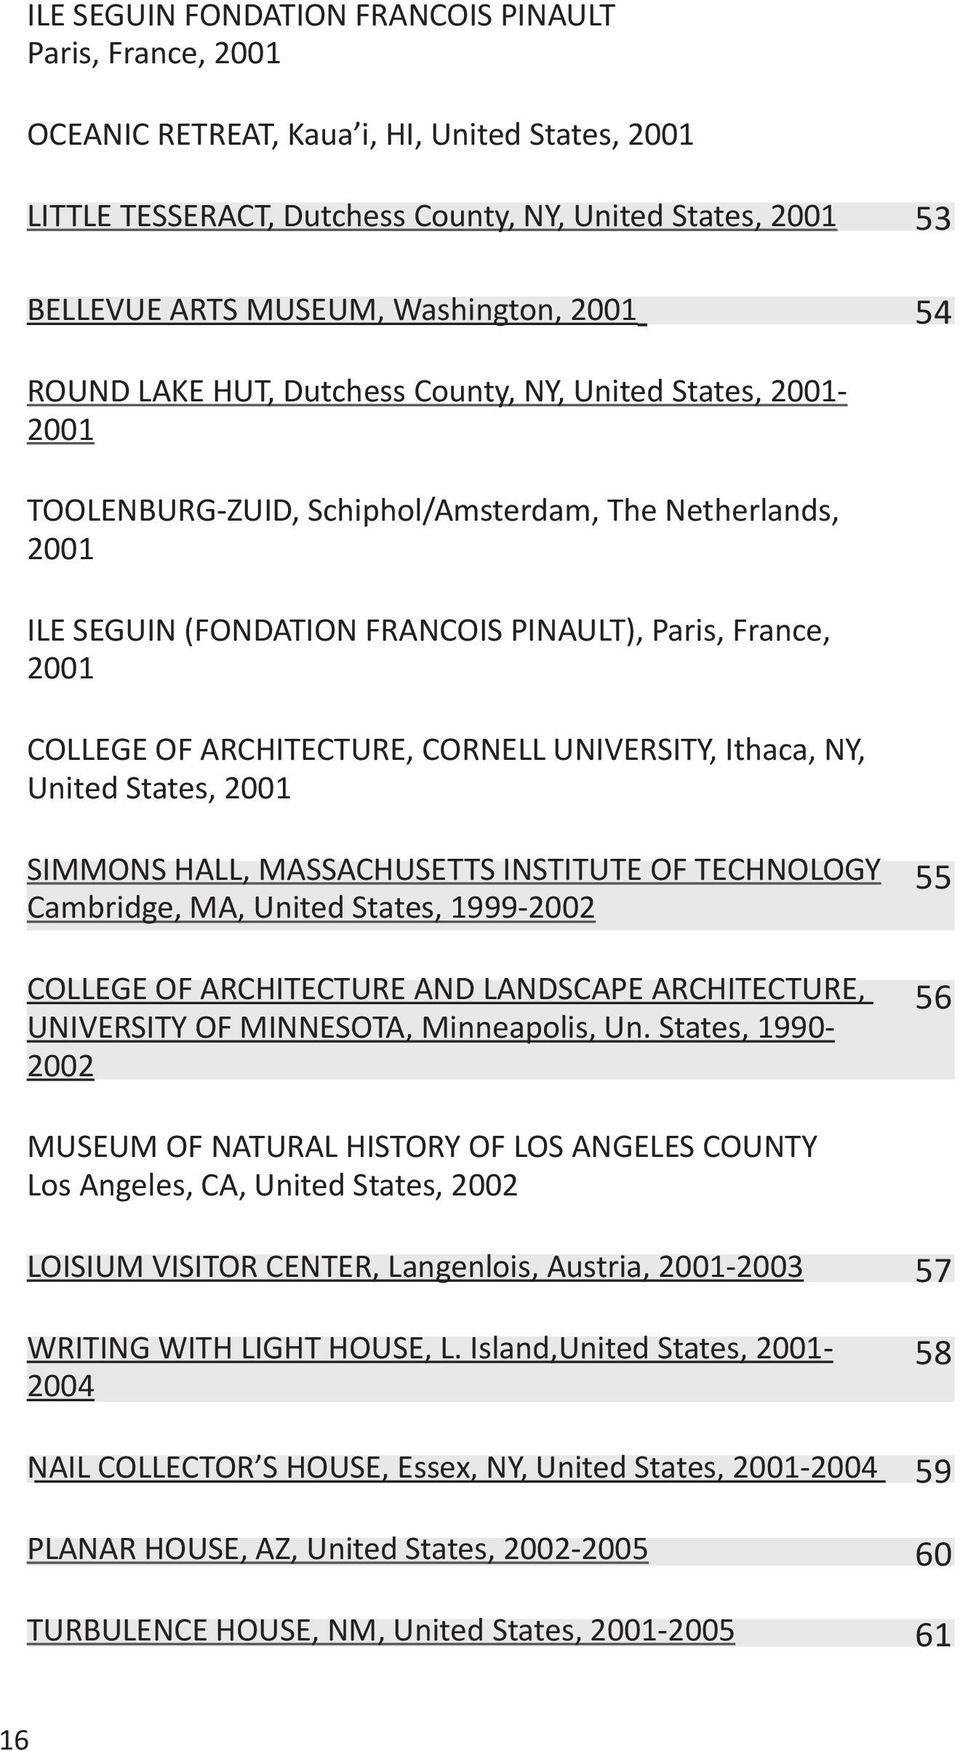 COLLEGE OF ARCHITECTURE, CORNELL UNIVERSITY, Ithaca, NY, United States, 2001 SIMMONS HALL, MASSACHUSETTS INSTITUTE OF TECHNOLOGY Cambridge, MA, United States, 1999-2002 COLLEGE OF ARCHITECTURE AND